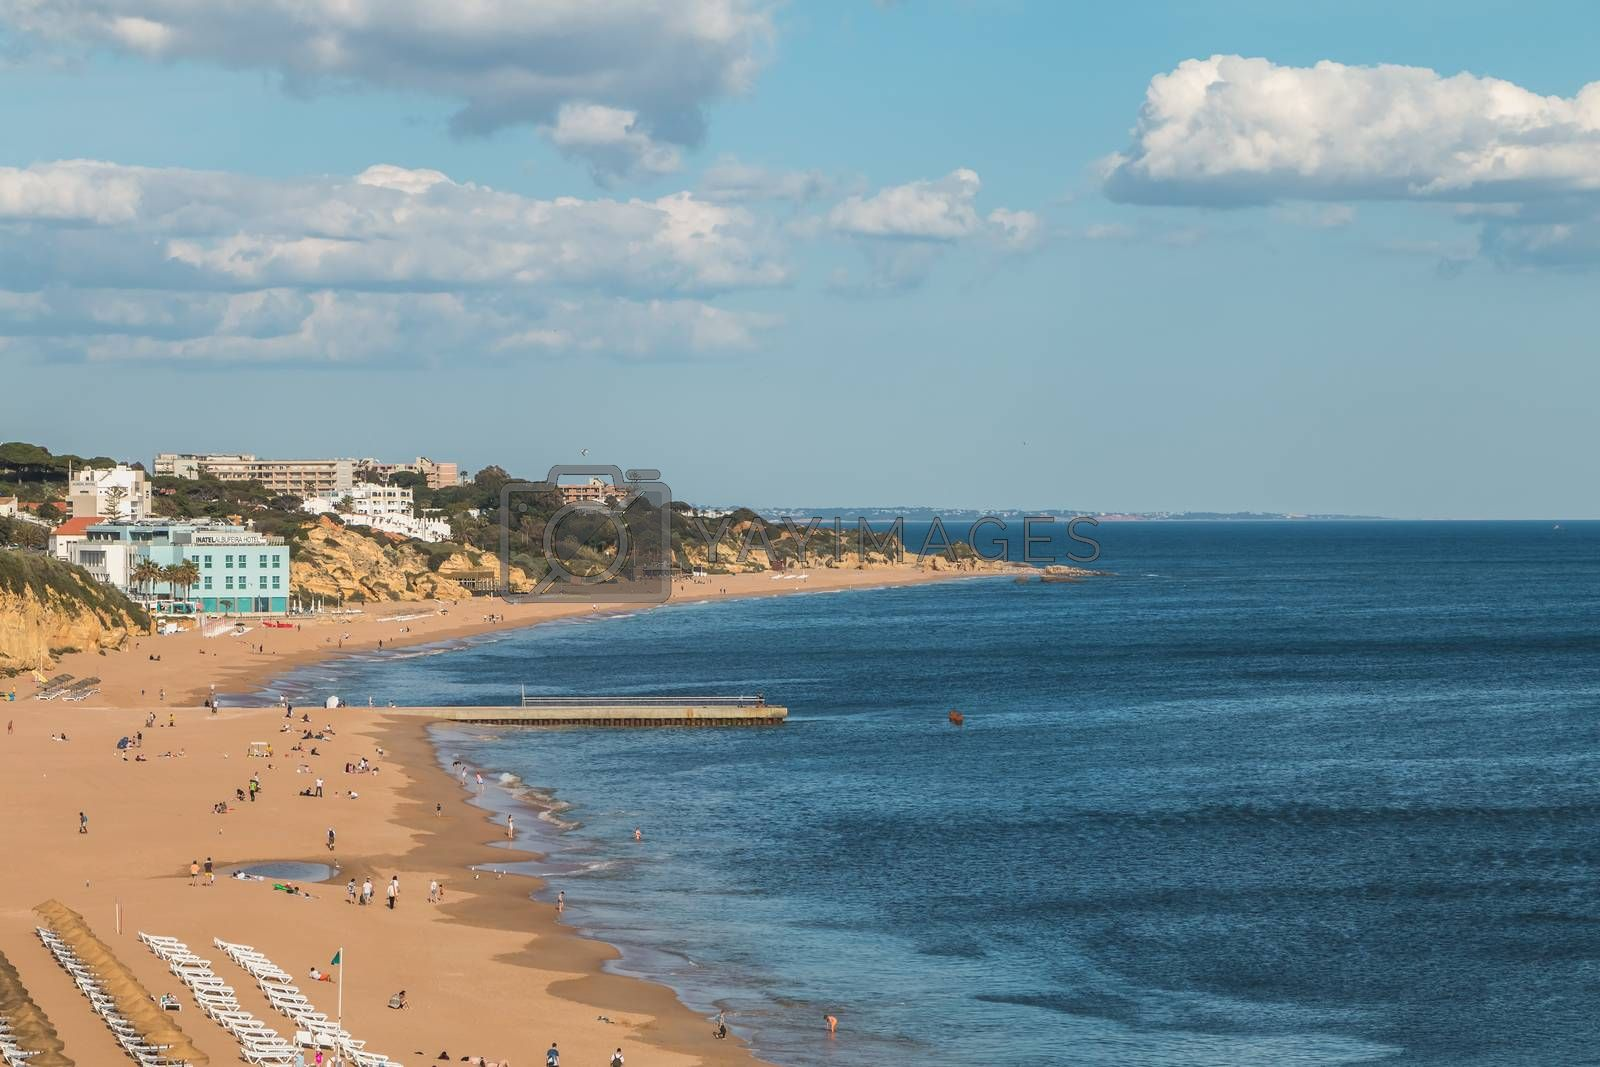 Royalty free image of High view of the city beaches in Albufeira, Portugal by AtlanticEUROSTOXX